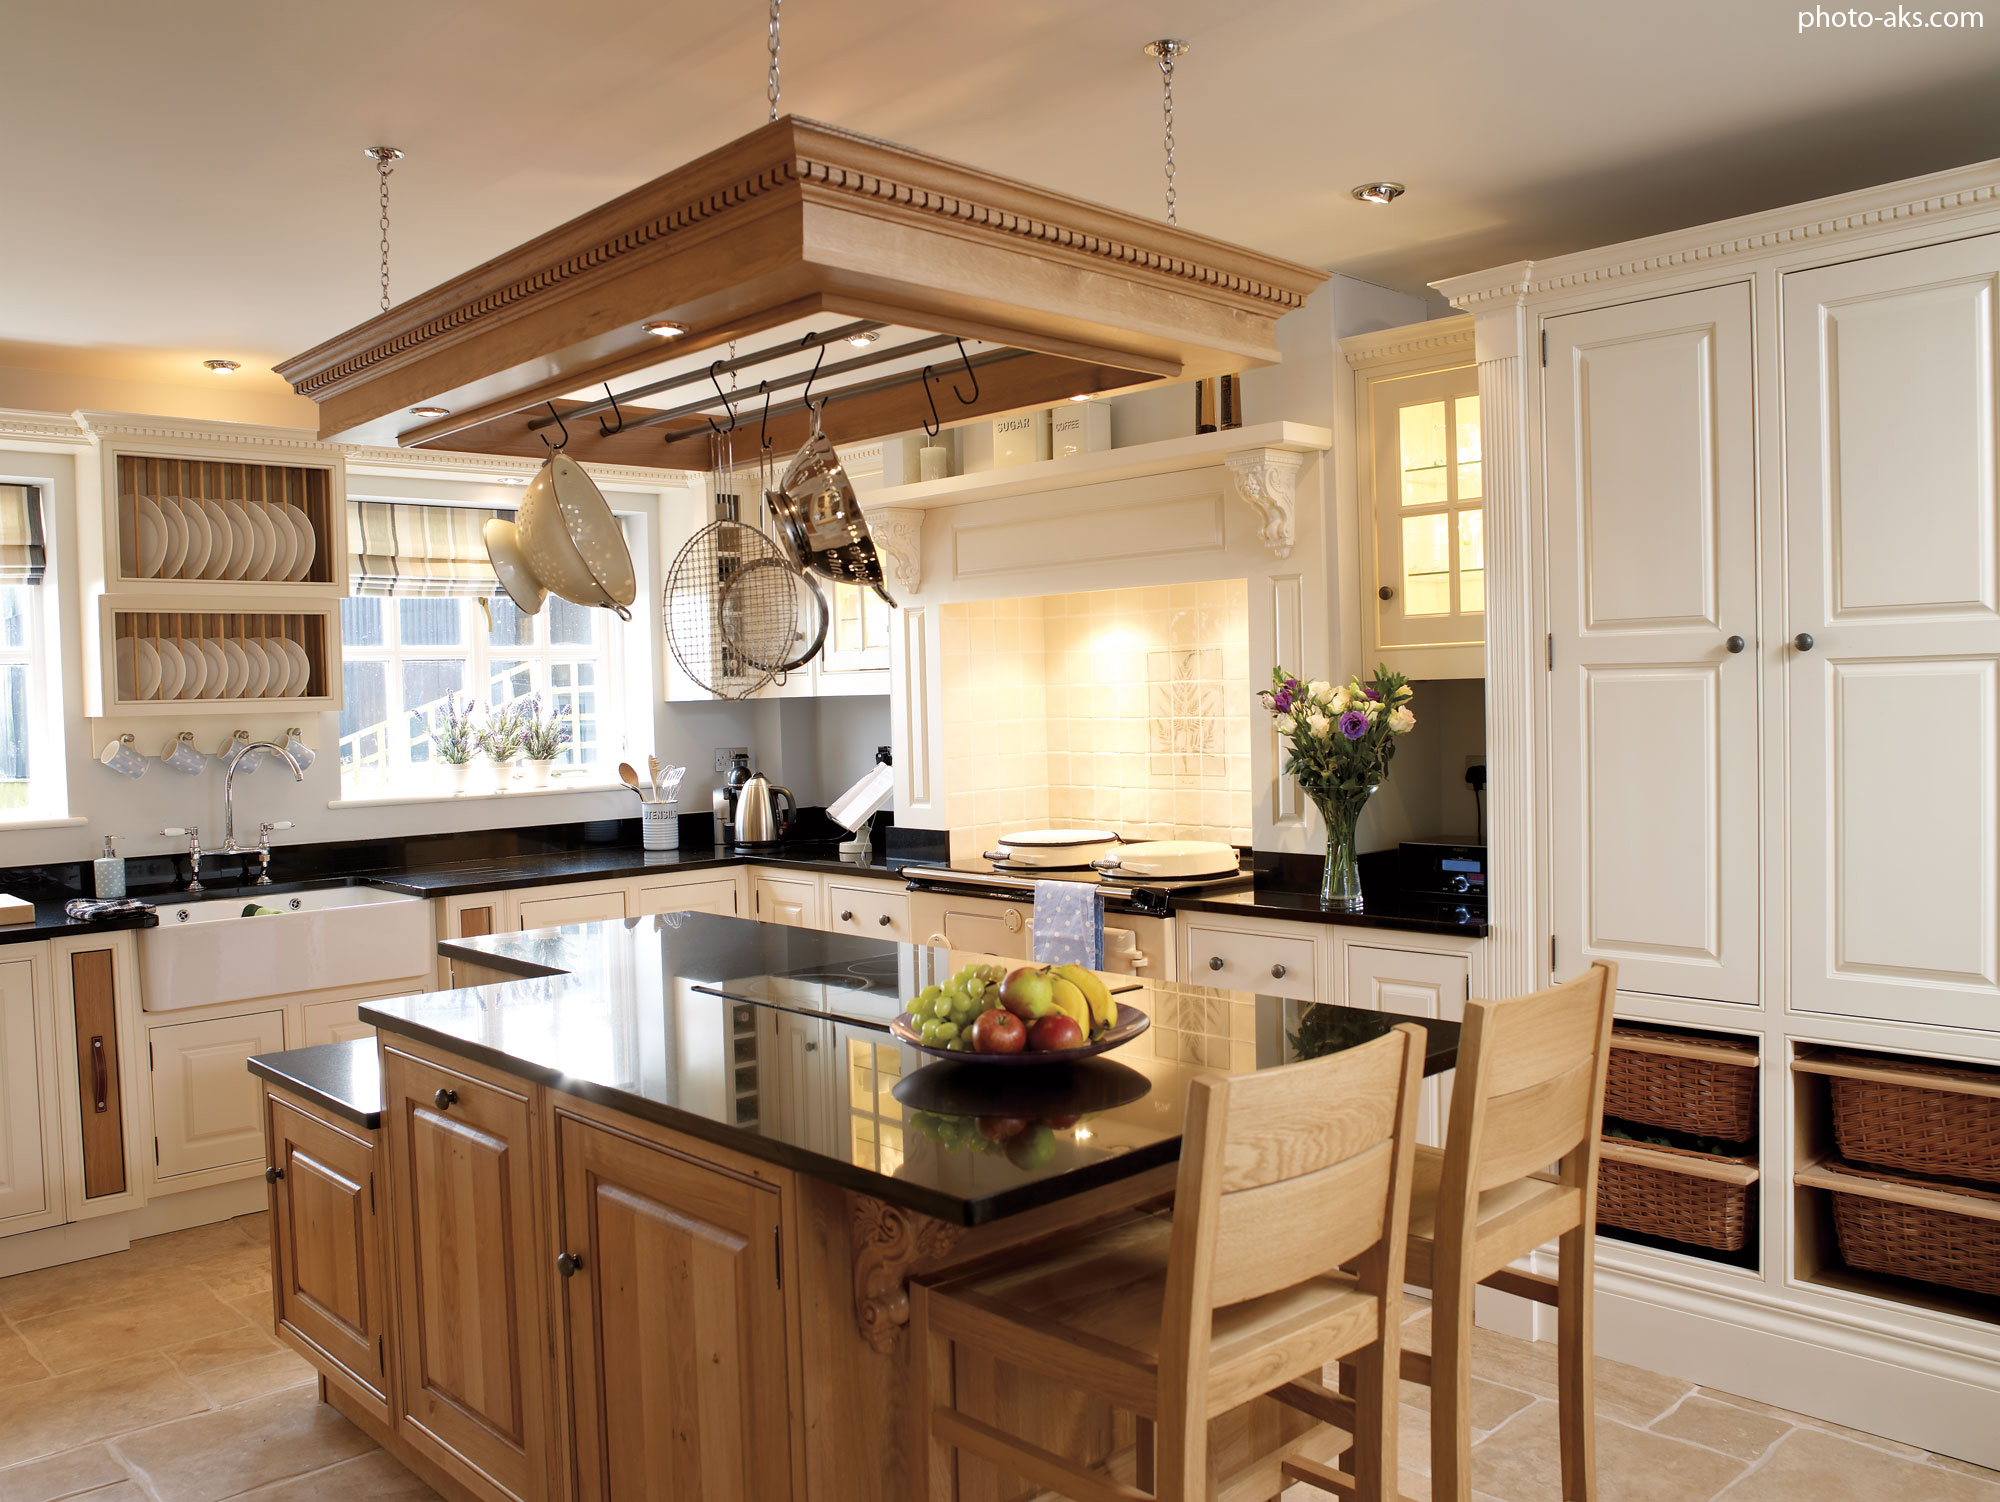 Kitchens kitchens ireland kitchen design fitted kitchens - Kitchen Island Decoration